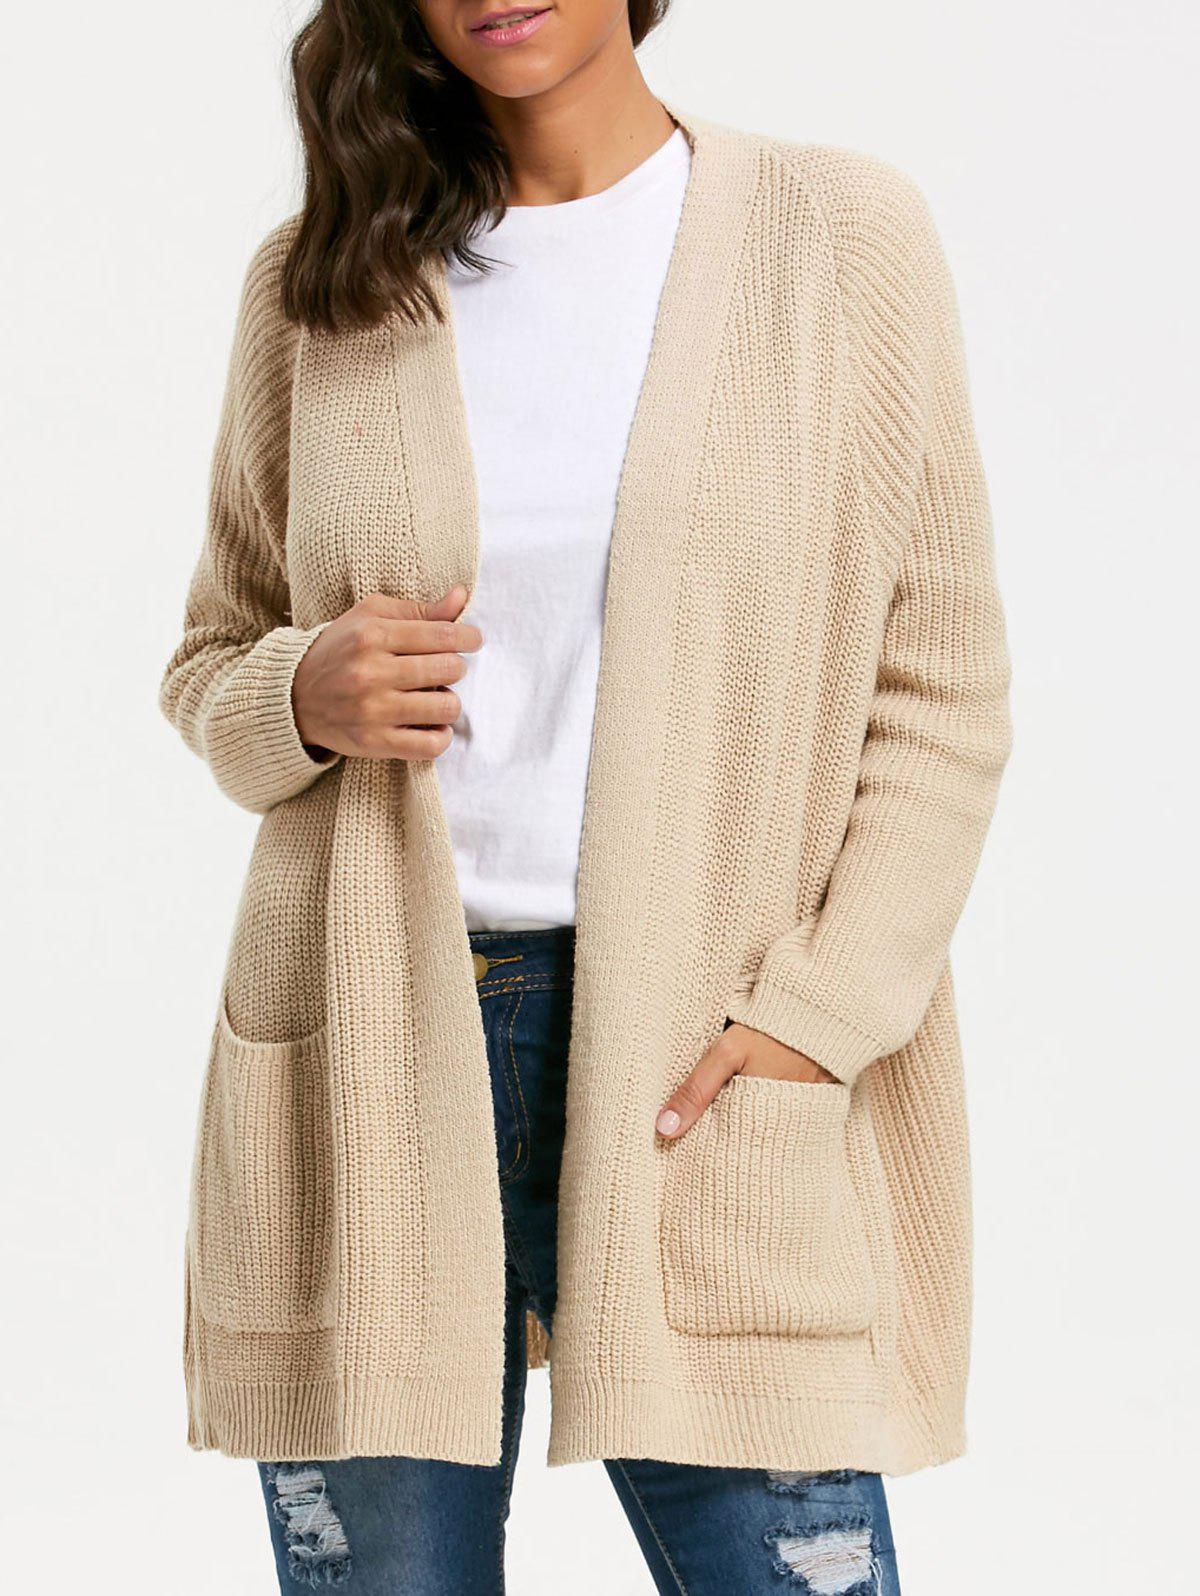 Pockets Knit Sweater CardiganWOMEN<br><br>Size: ONE SIZE; Color: KHAKI; Type: Cardigans; Material: Polyester,Spandex; Sleeve Length: Full; Collar: Collarless; Style: Casual; Pattern Type: Solid; Season: Fall,Winter; Weight: 0.4900kg; Package Contents: 1 x Cardigan;